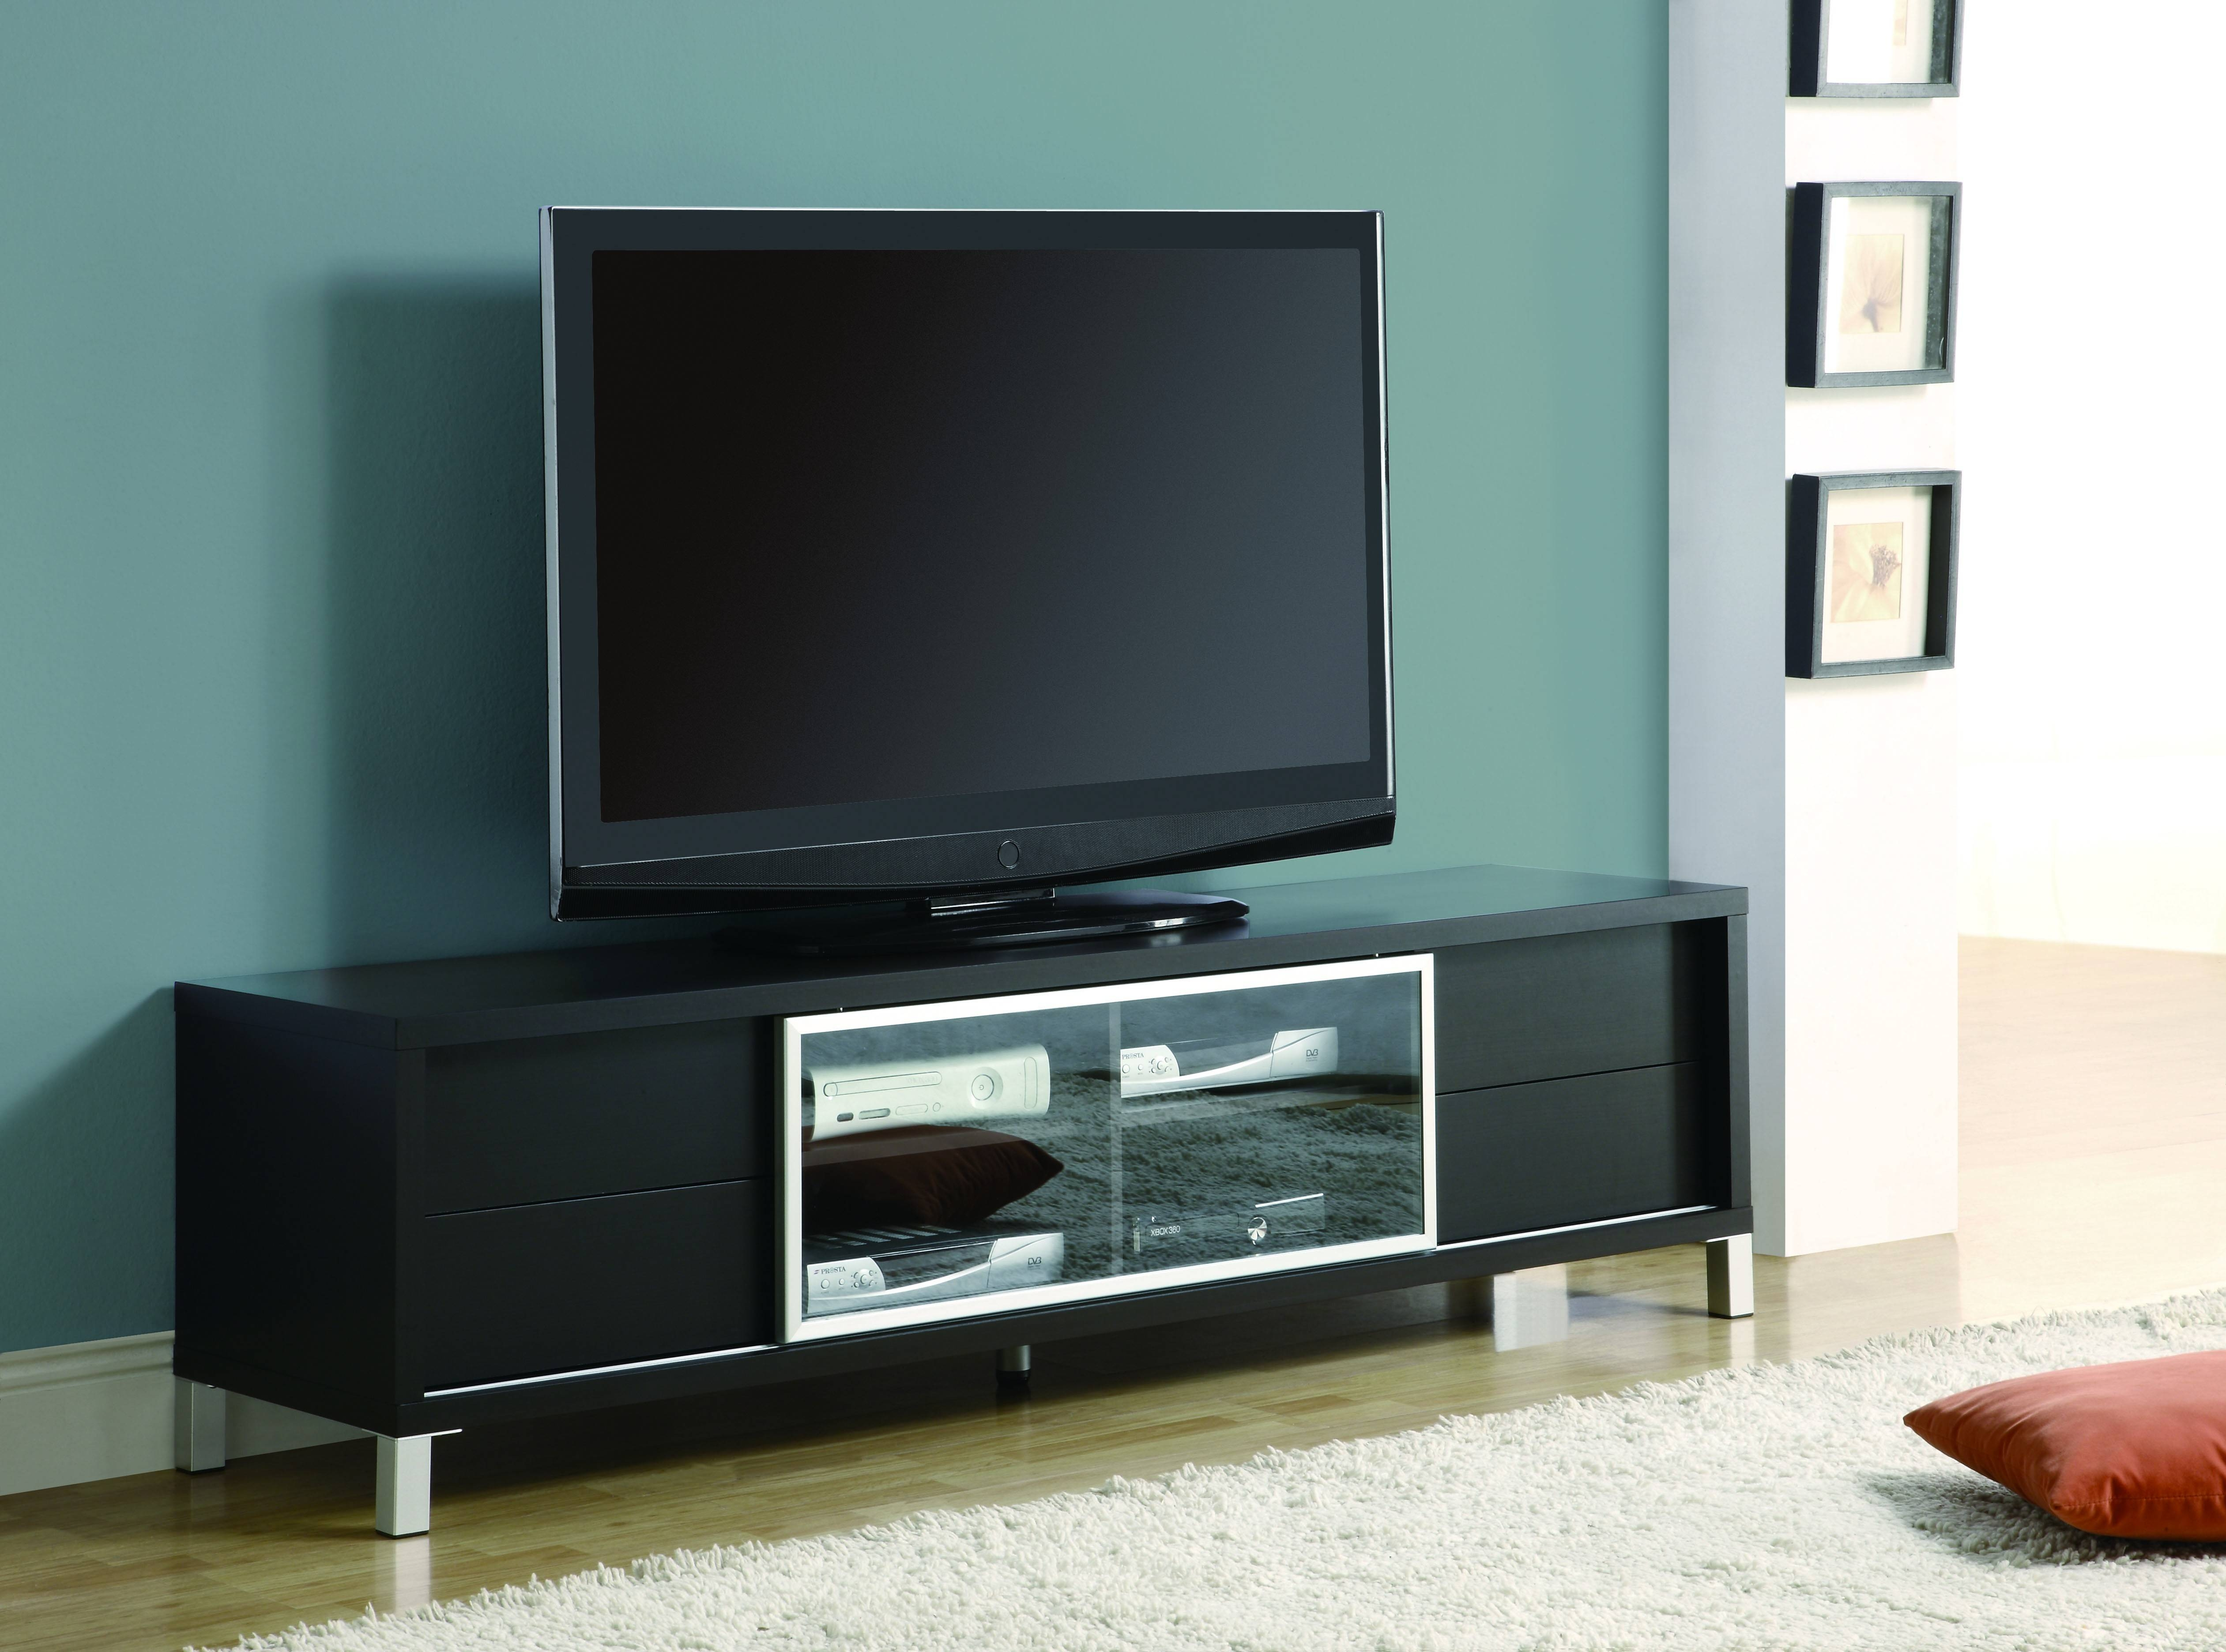 Black Painted Oak Wood Wide Screen Tv Stand Mixed Light Blue Wall In Stylish Tv Stands (View 15 of 15)